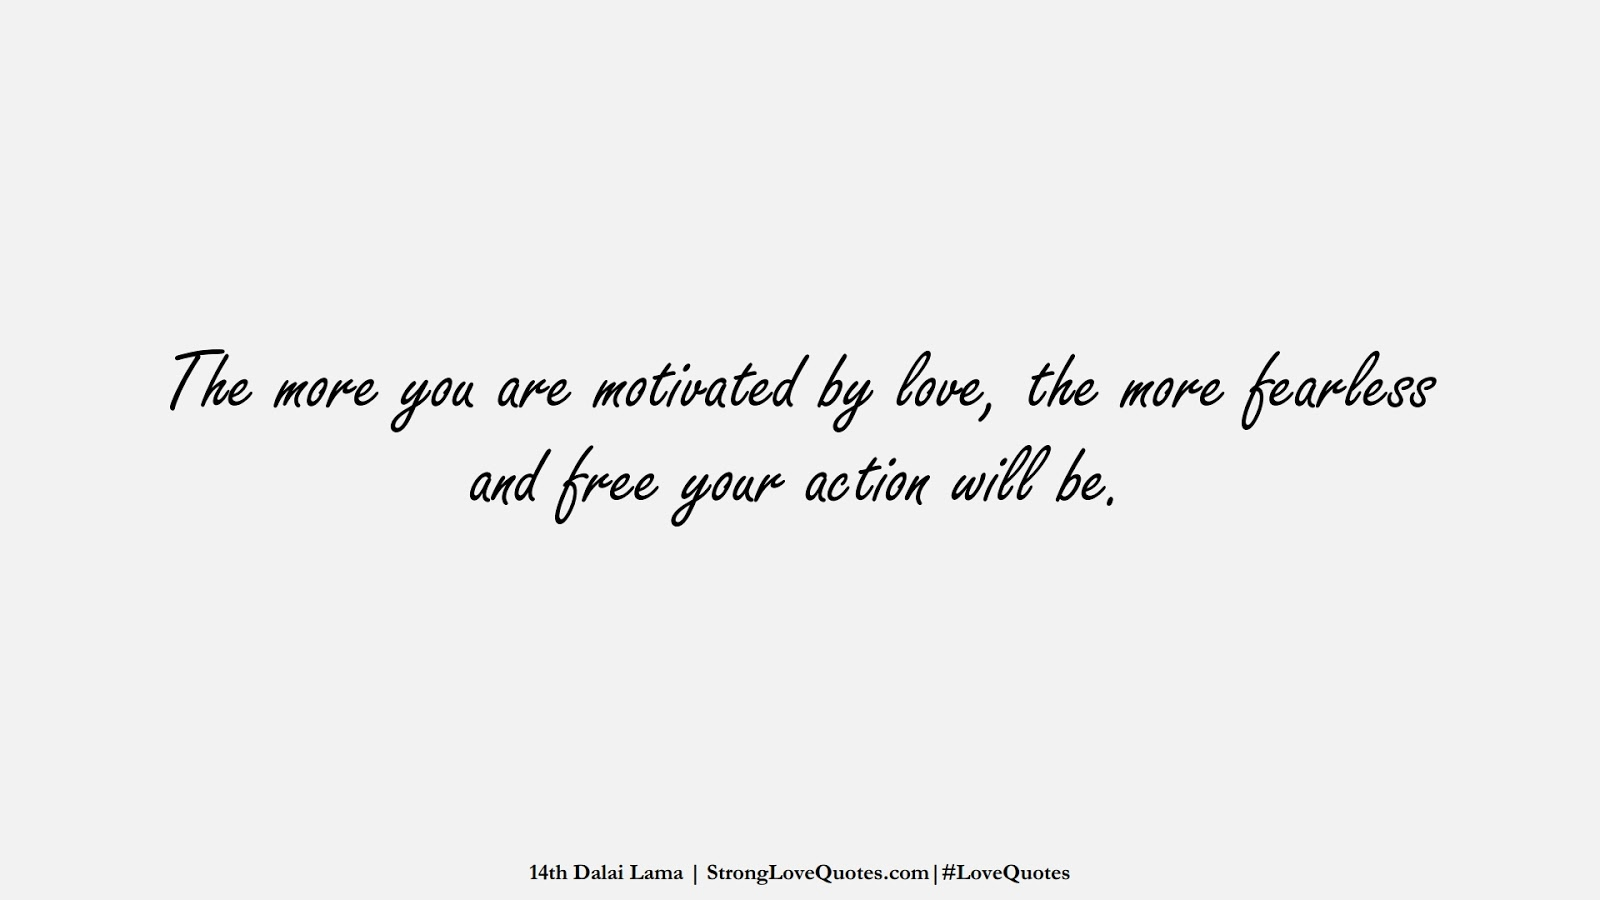 The more you are motivated by love, the more fearless and free your action will be. (14th Dalai Lama);  #LoveQuotes